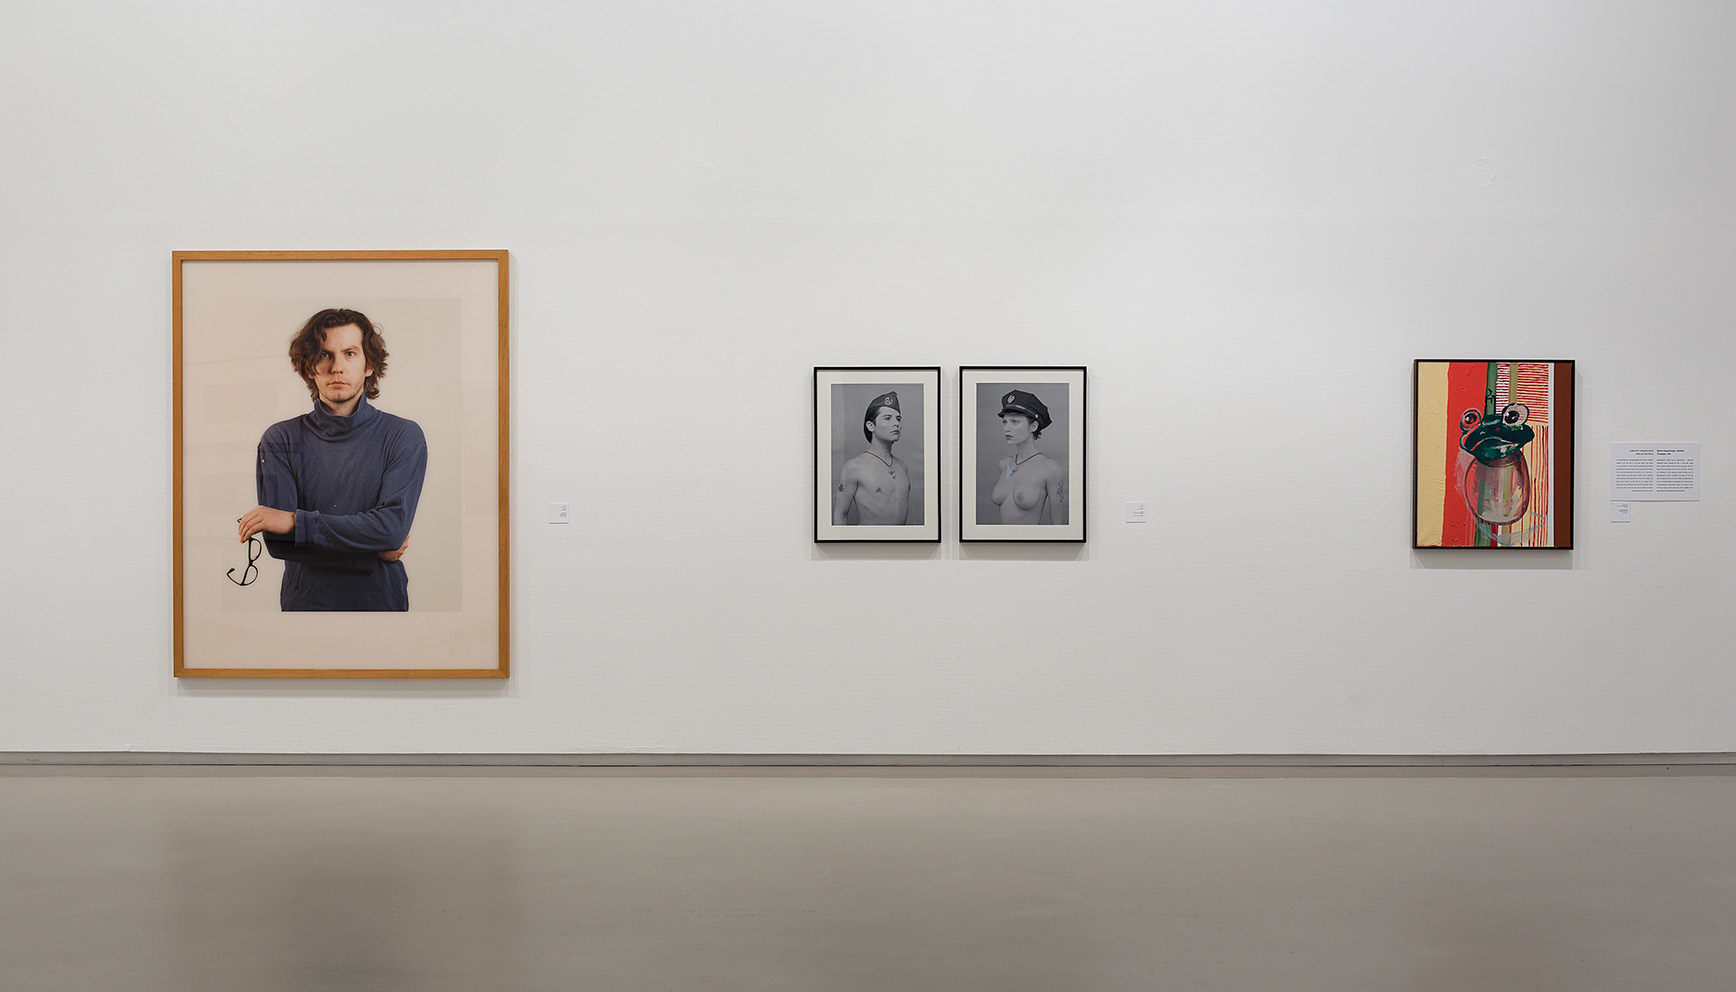 "Installation view from the exhibition ""Prima Facie"", Tel Aviv, 2016. From Left to right: Thomas Ruff, Self Portrait, 1987. Nir Hod, Policeman and policewoman, 1997. Martin Kippenberger, Untitled (from the series the Egg-Paintings), 1996. Courtesy of Igal Ahouvi Art Collection."